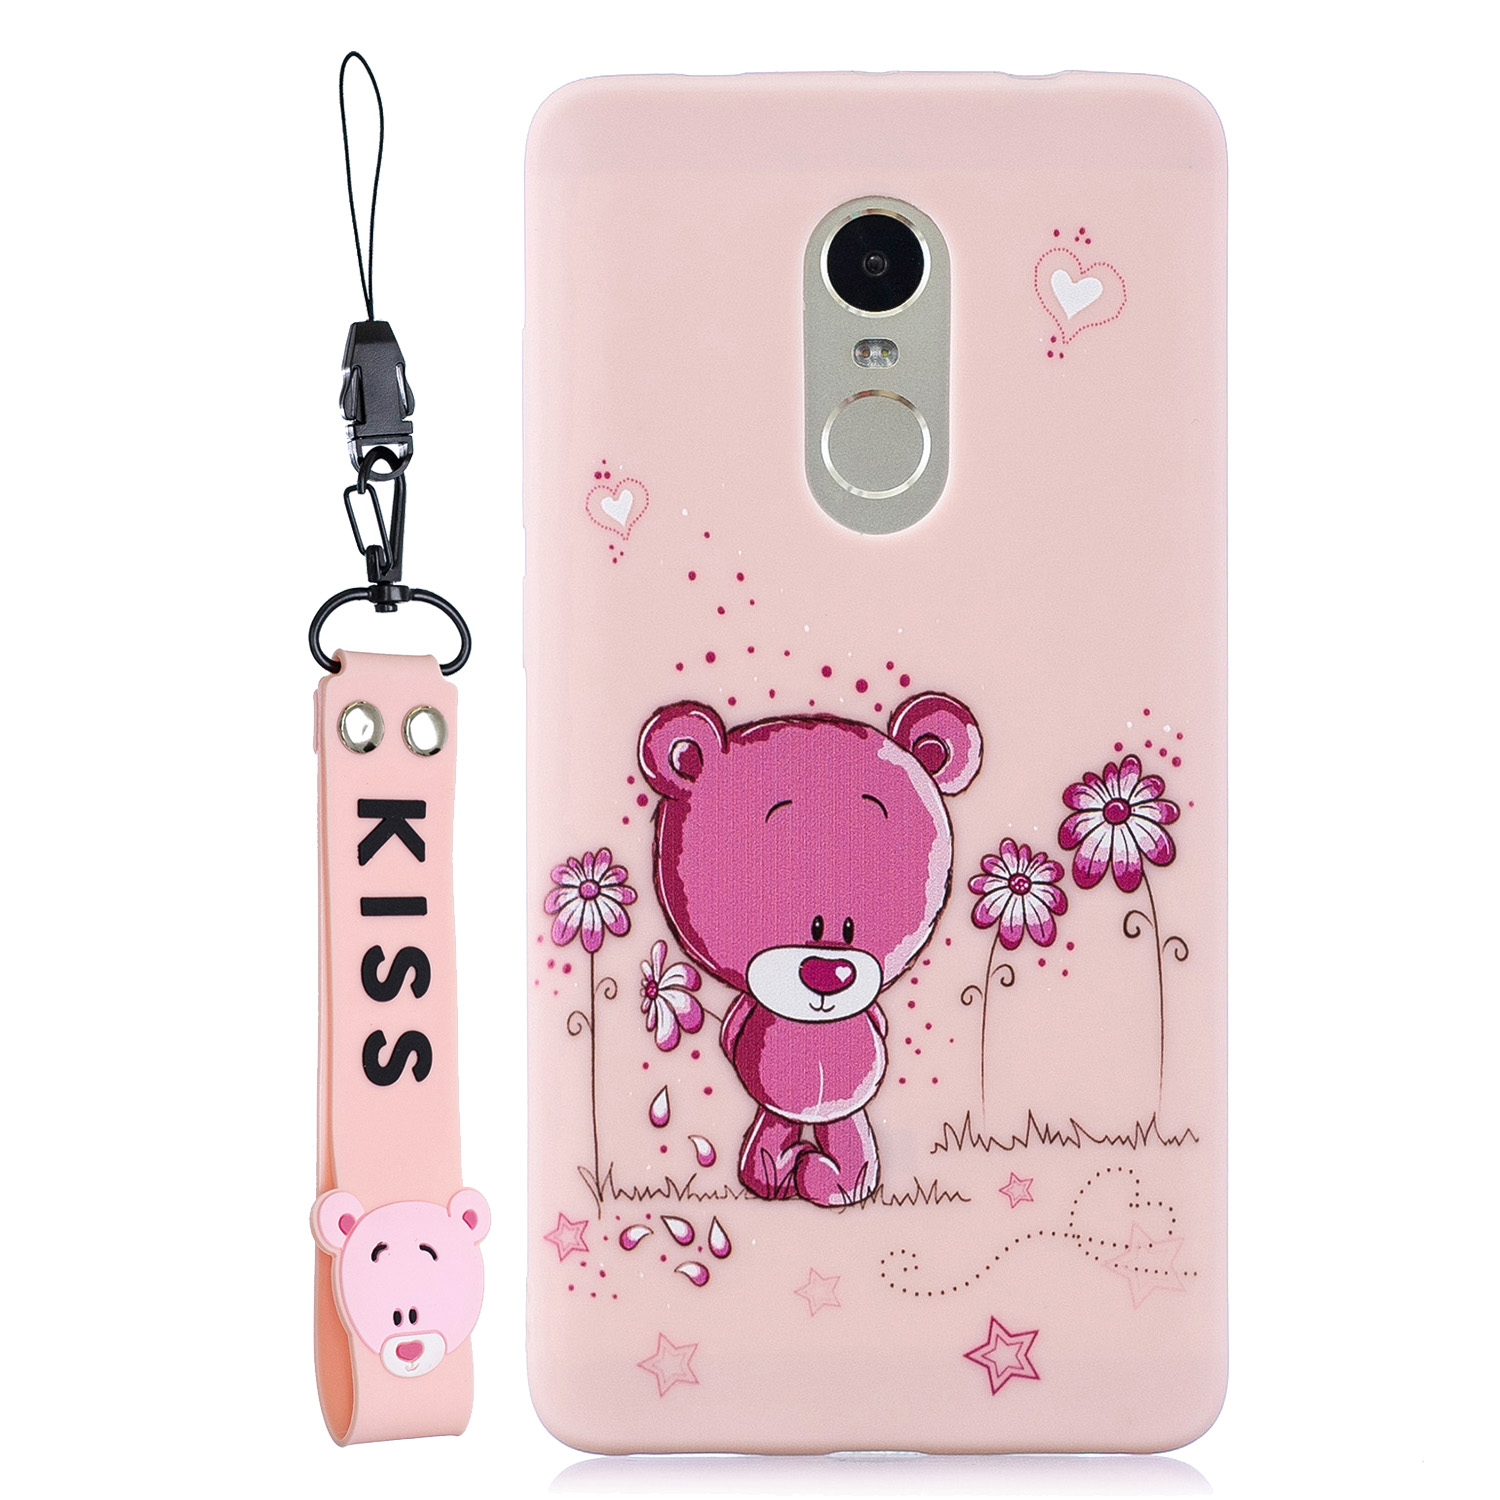 For Redmi note 4X/NOTE 4 Cartoon Lovely Coloured Painted Soft TPU Back Cover Non-slip Shockproof Full Protective Case with Lanyard Light pink